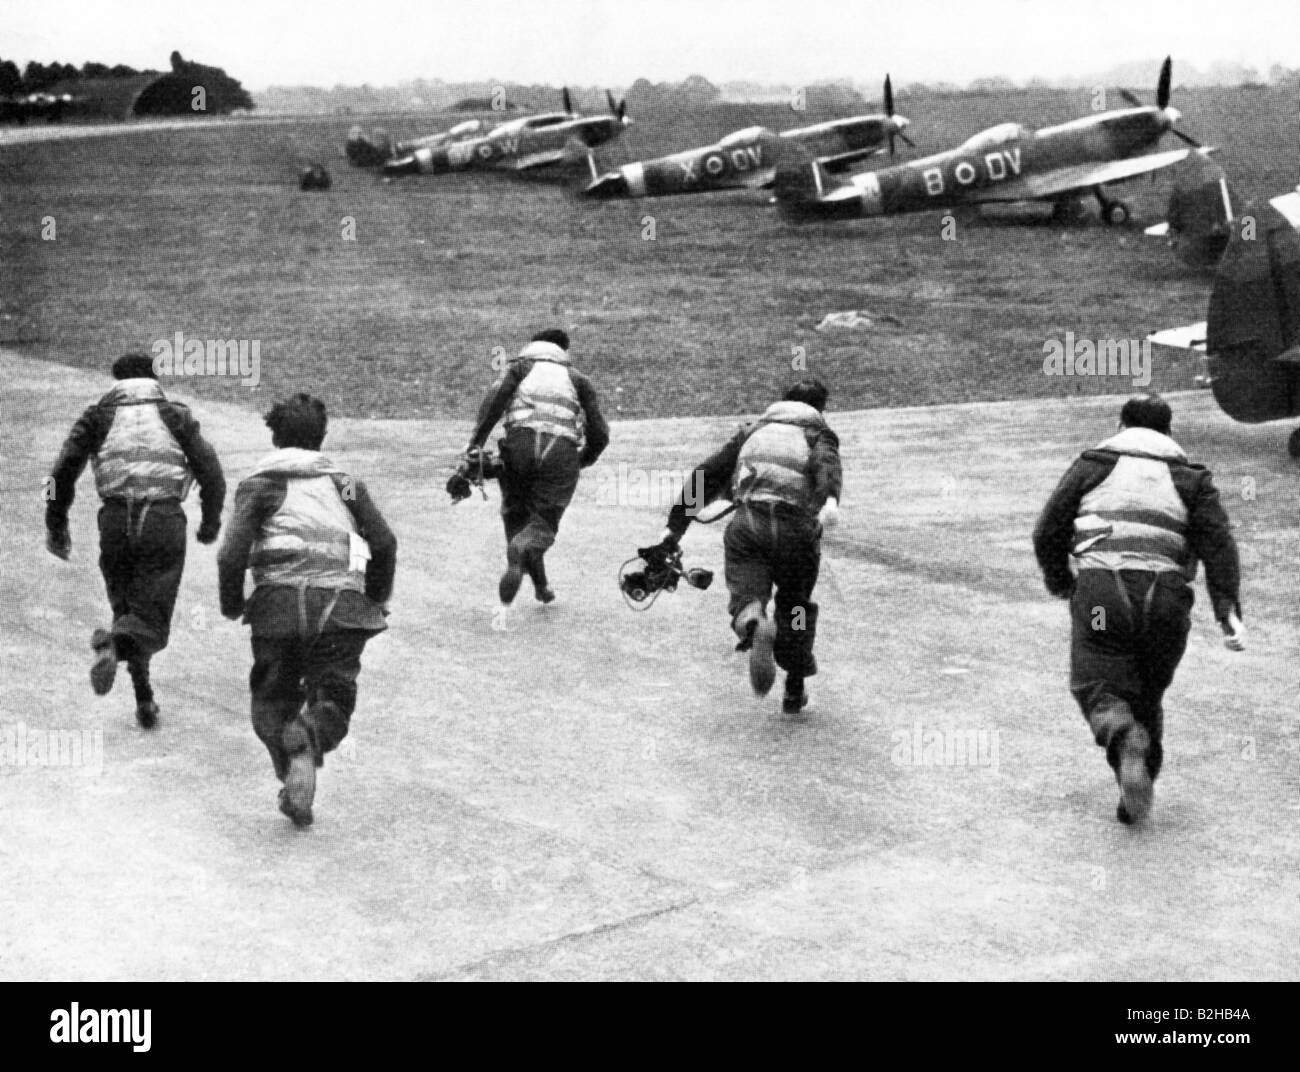 Scramble 1940 photo of English fighter pilots scrambling for their Spifires during the Battle of Britain - Stock Image